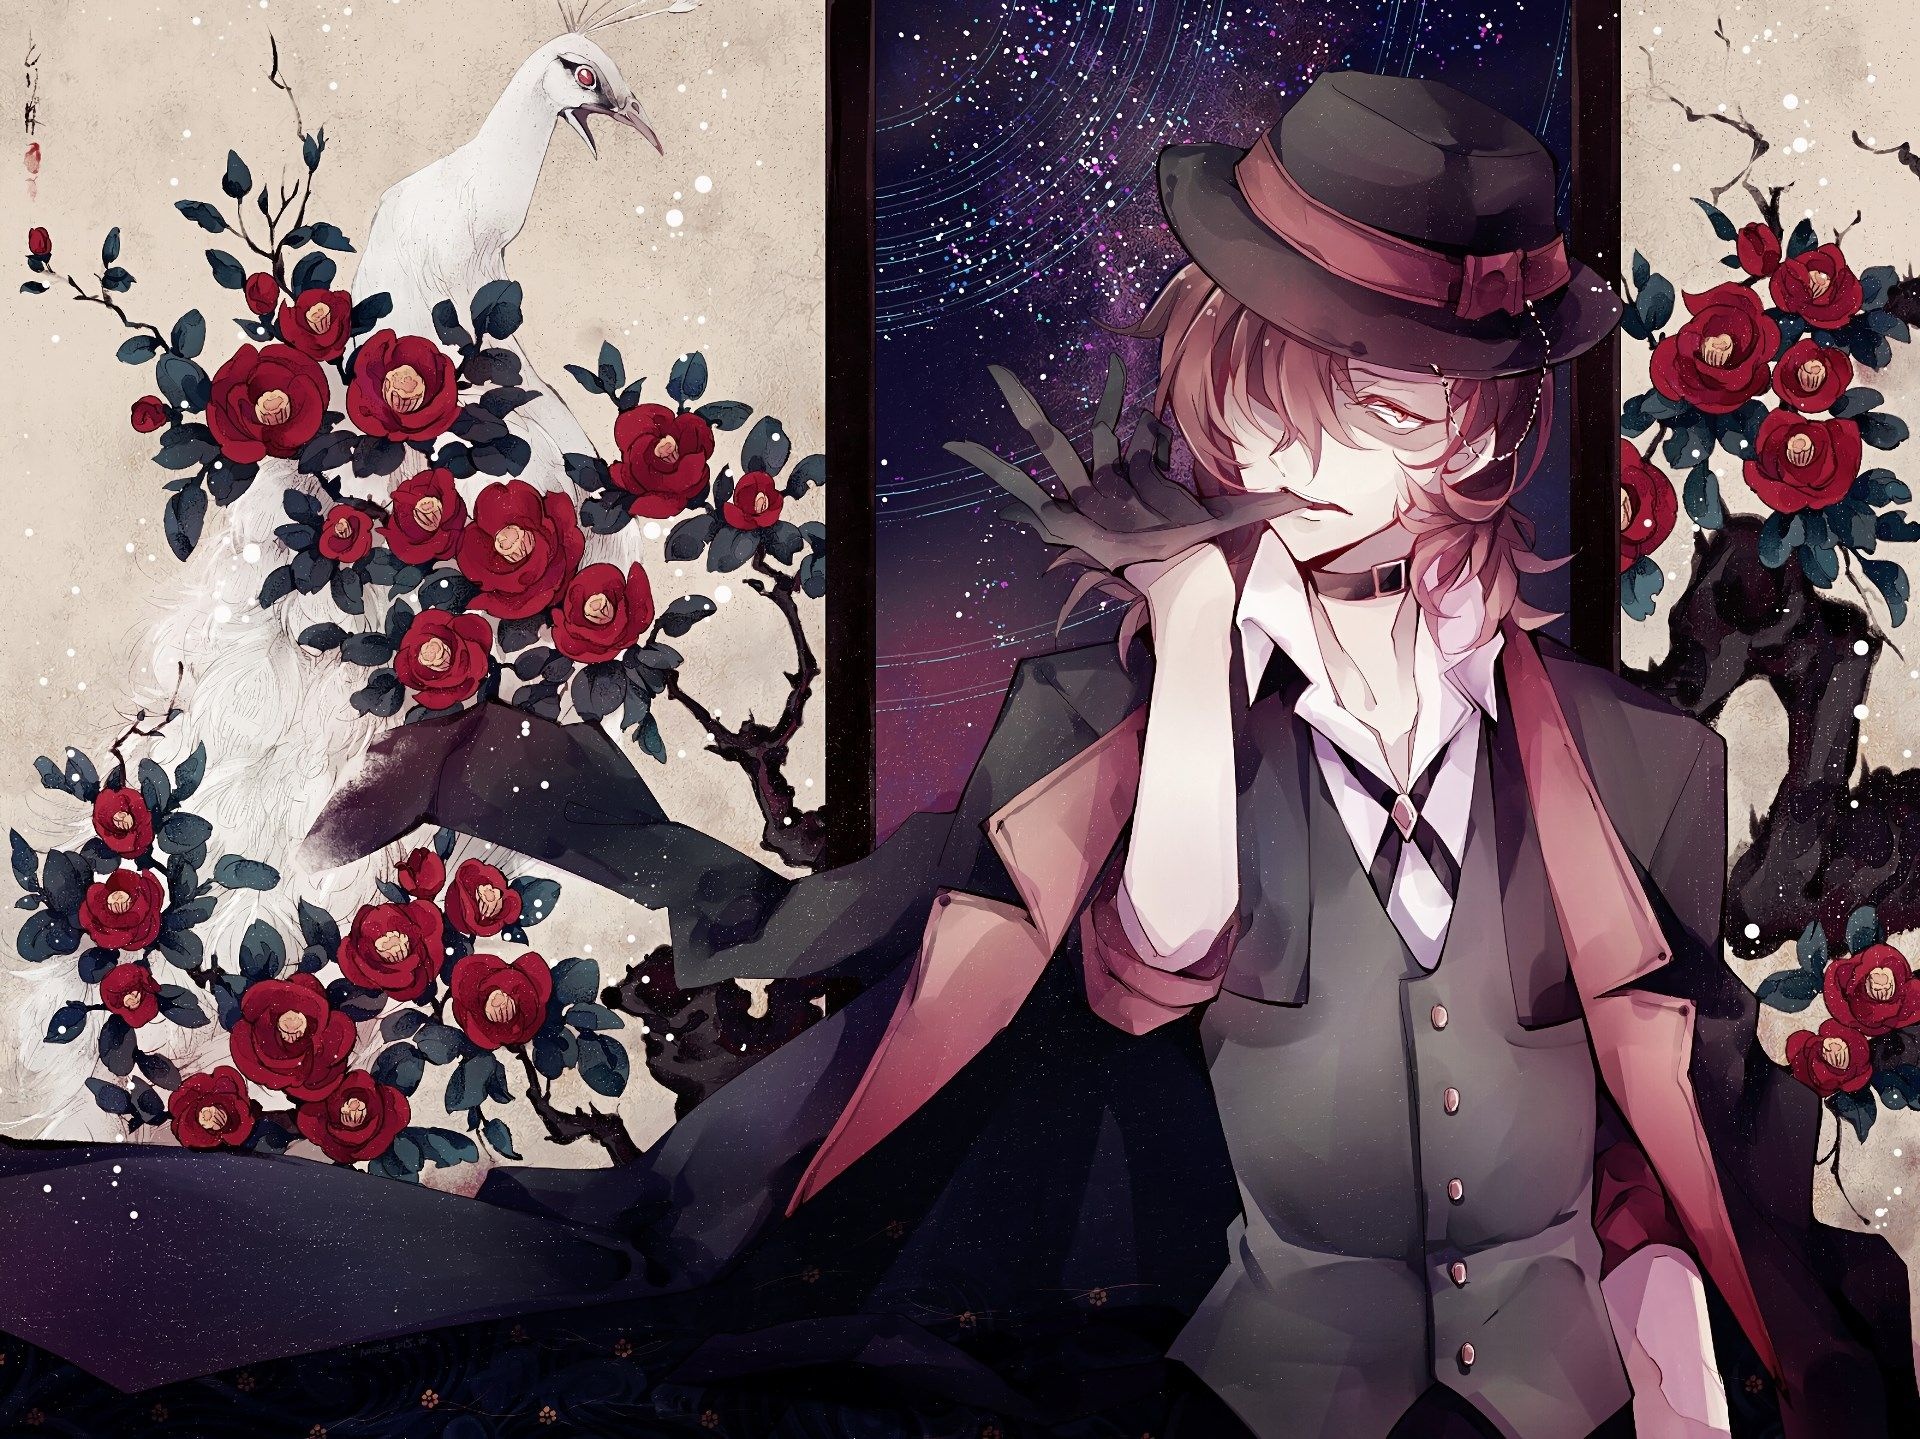 Bungou Stray Dogs Wallpapers Wallpaper Cave Join the online community, create your anime and manga list, read reviews, explore the forums, follow news, and so much more! bungou stray dogs wallpapers